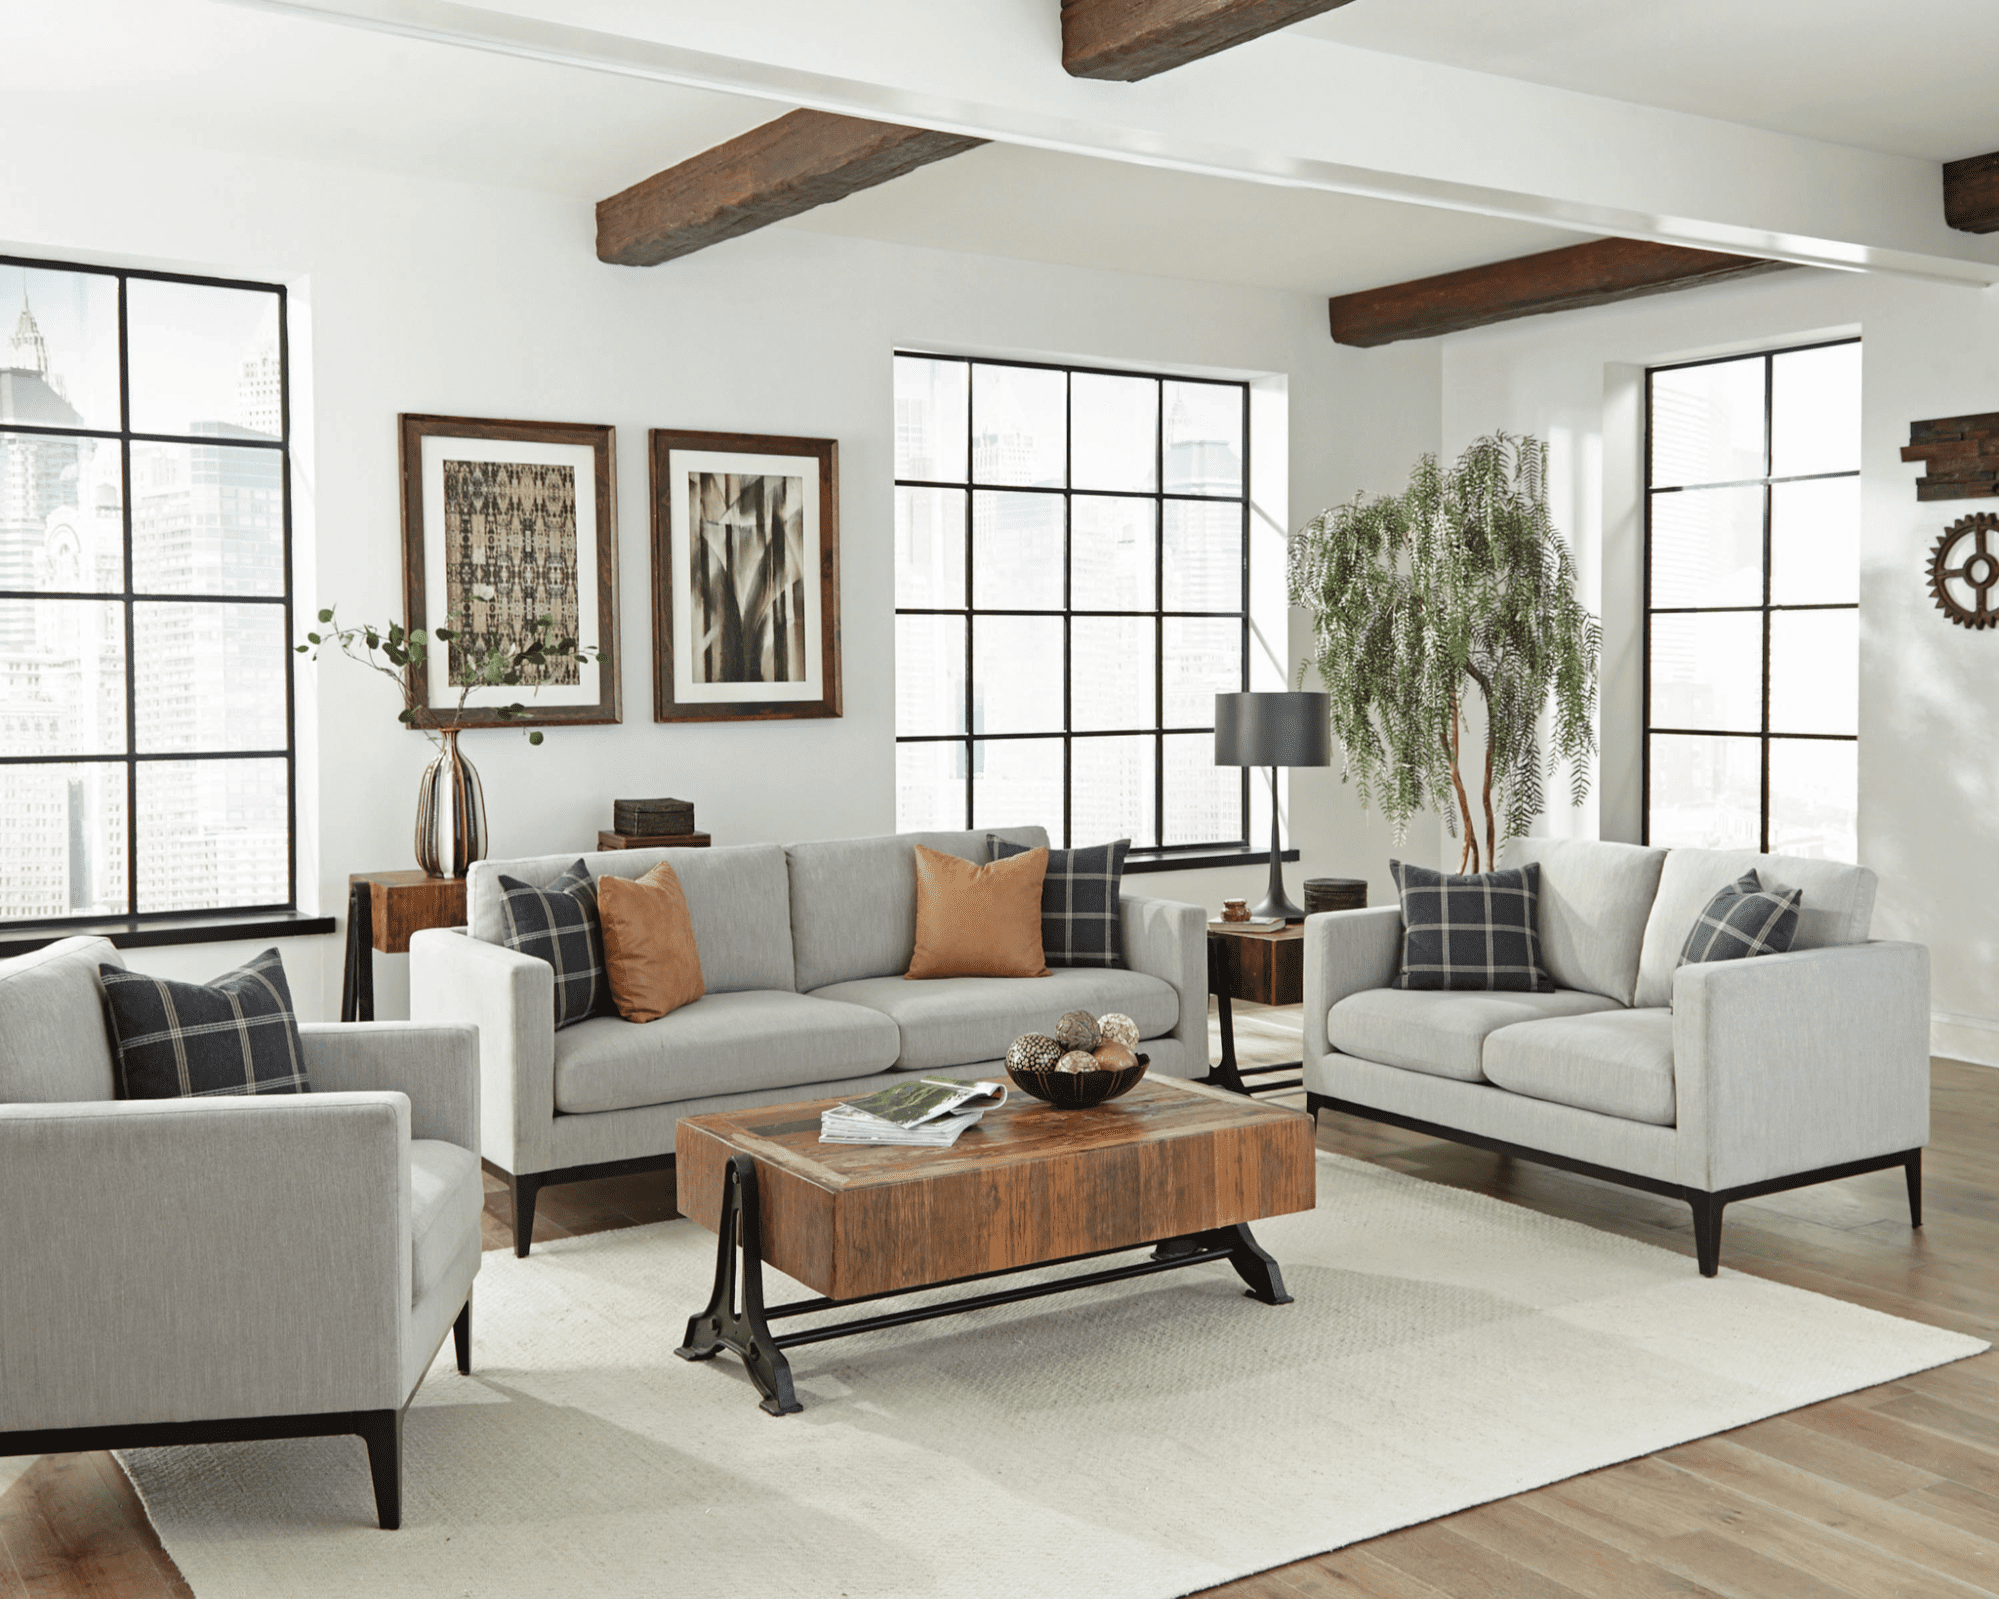 Modern living room ideas How to combine fun with functional